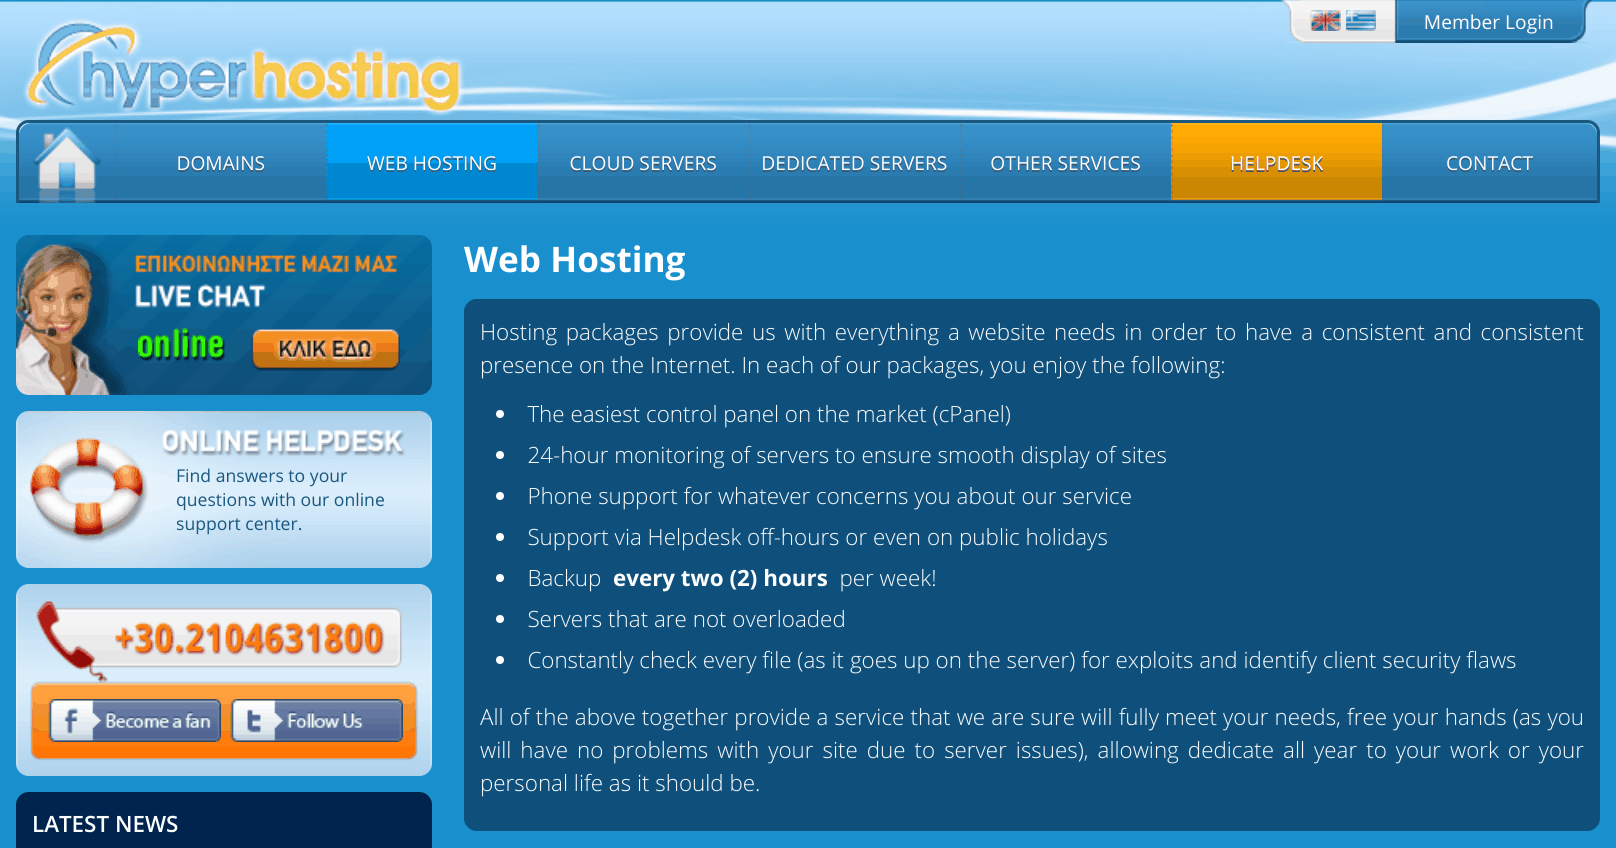 hyperhosting features